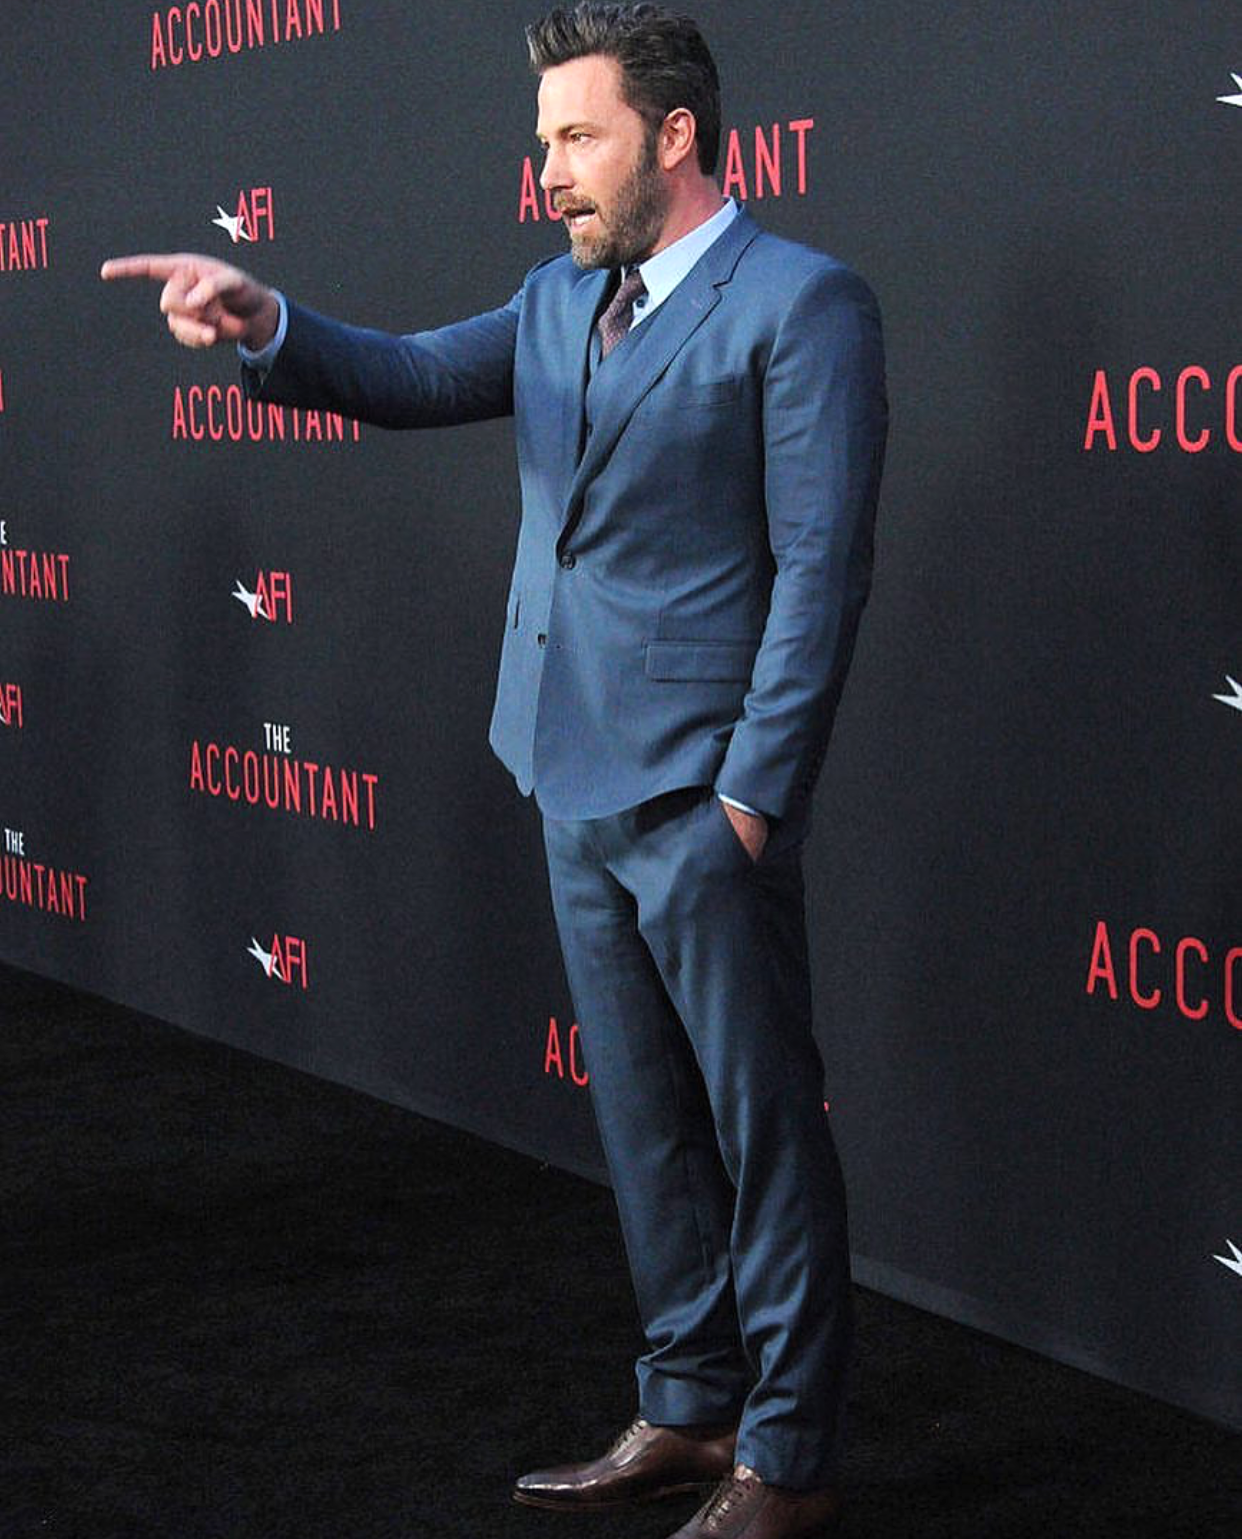 the-accountant-movie-premiere-ben-affleck-hollywood